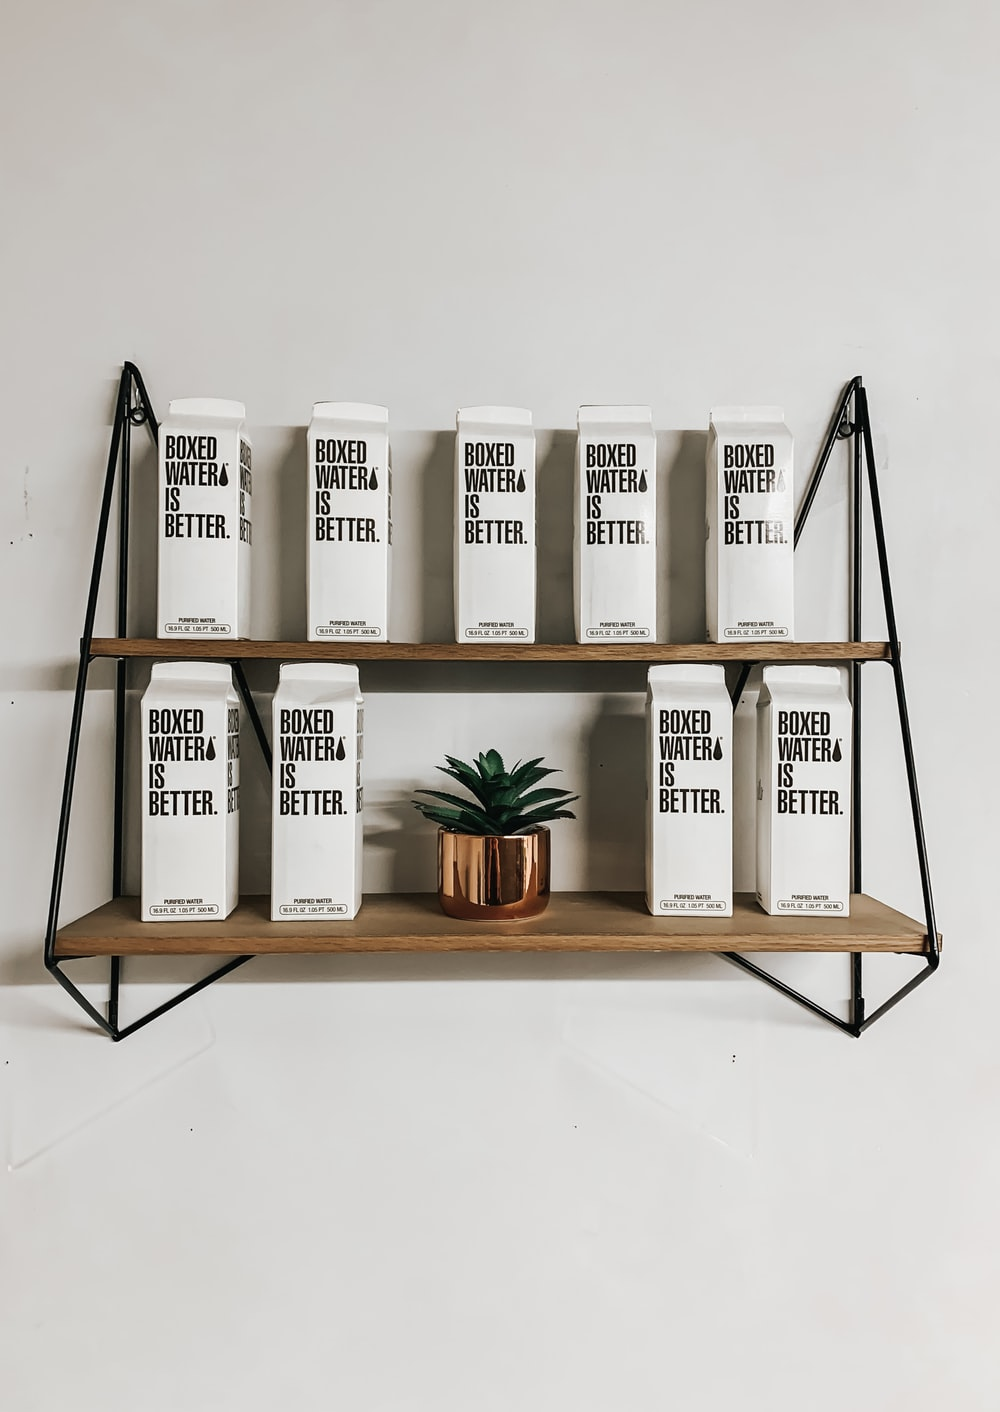 white and black labeled boxes on brown wooden rack